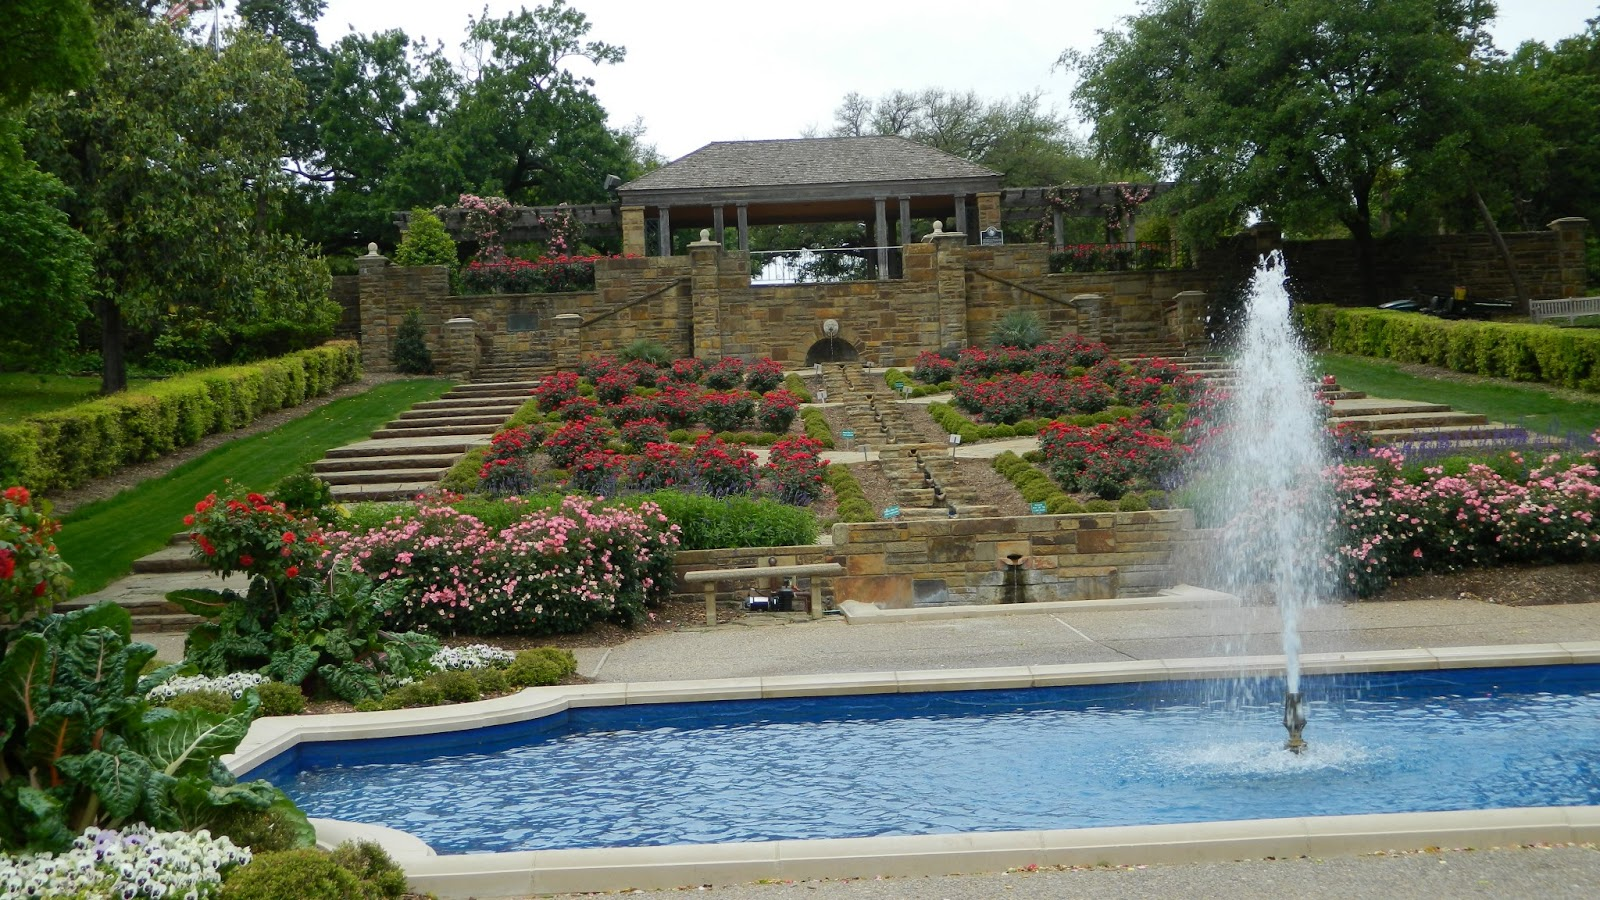 GardenEnvy: This Texas Botanical Garden Is So Worth A Visit